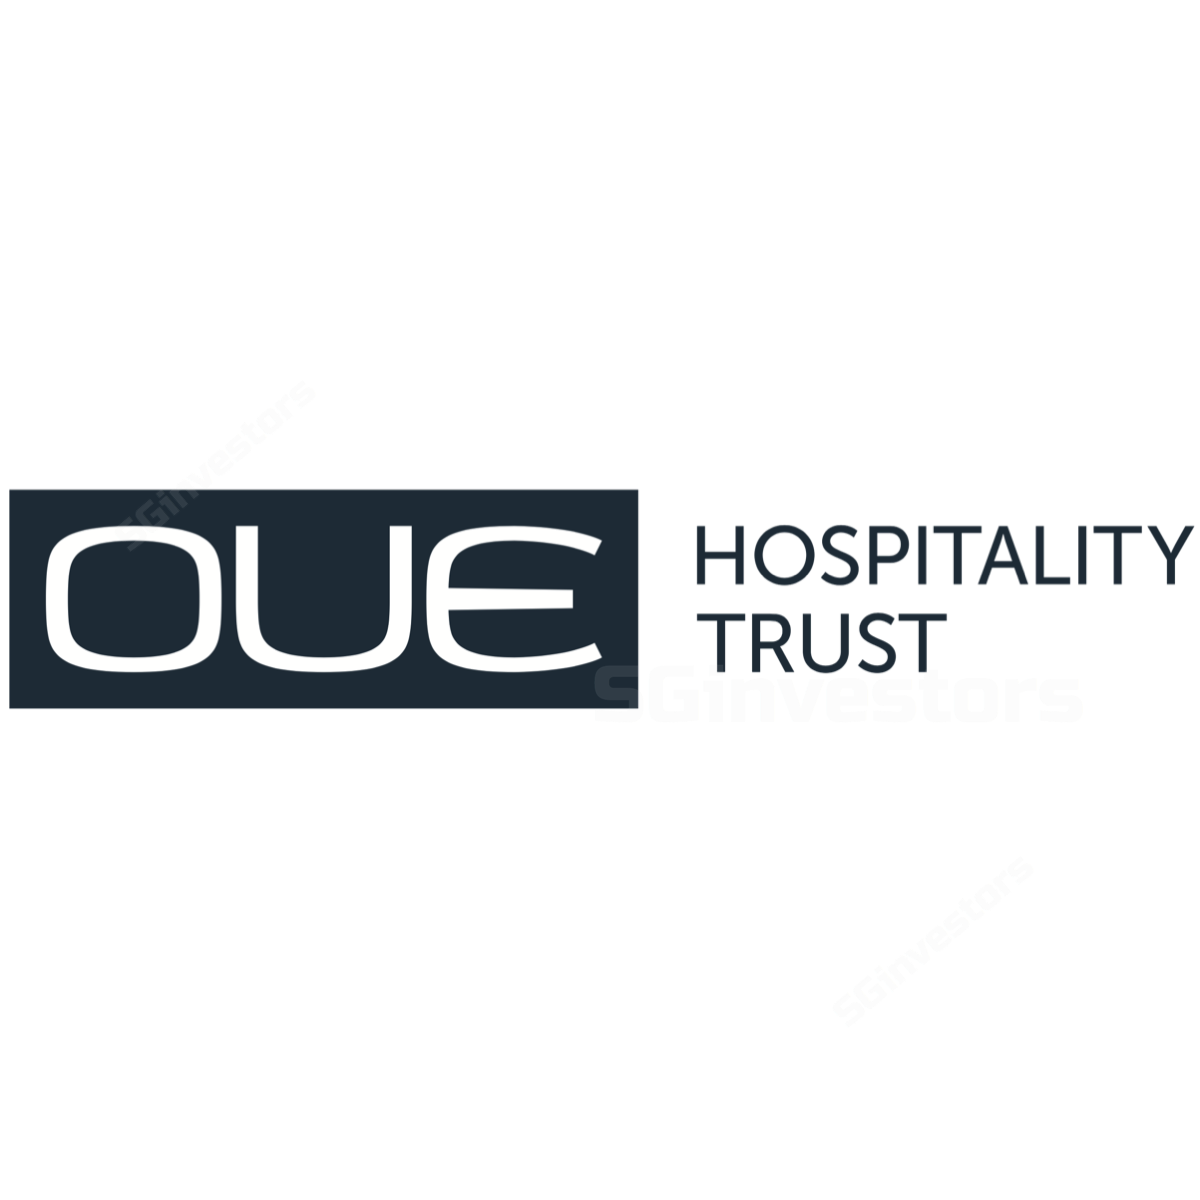 OUE Hospitality Trust - DBS Group Research Research 2018-07-30: Short Term Lull An Opportunity